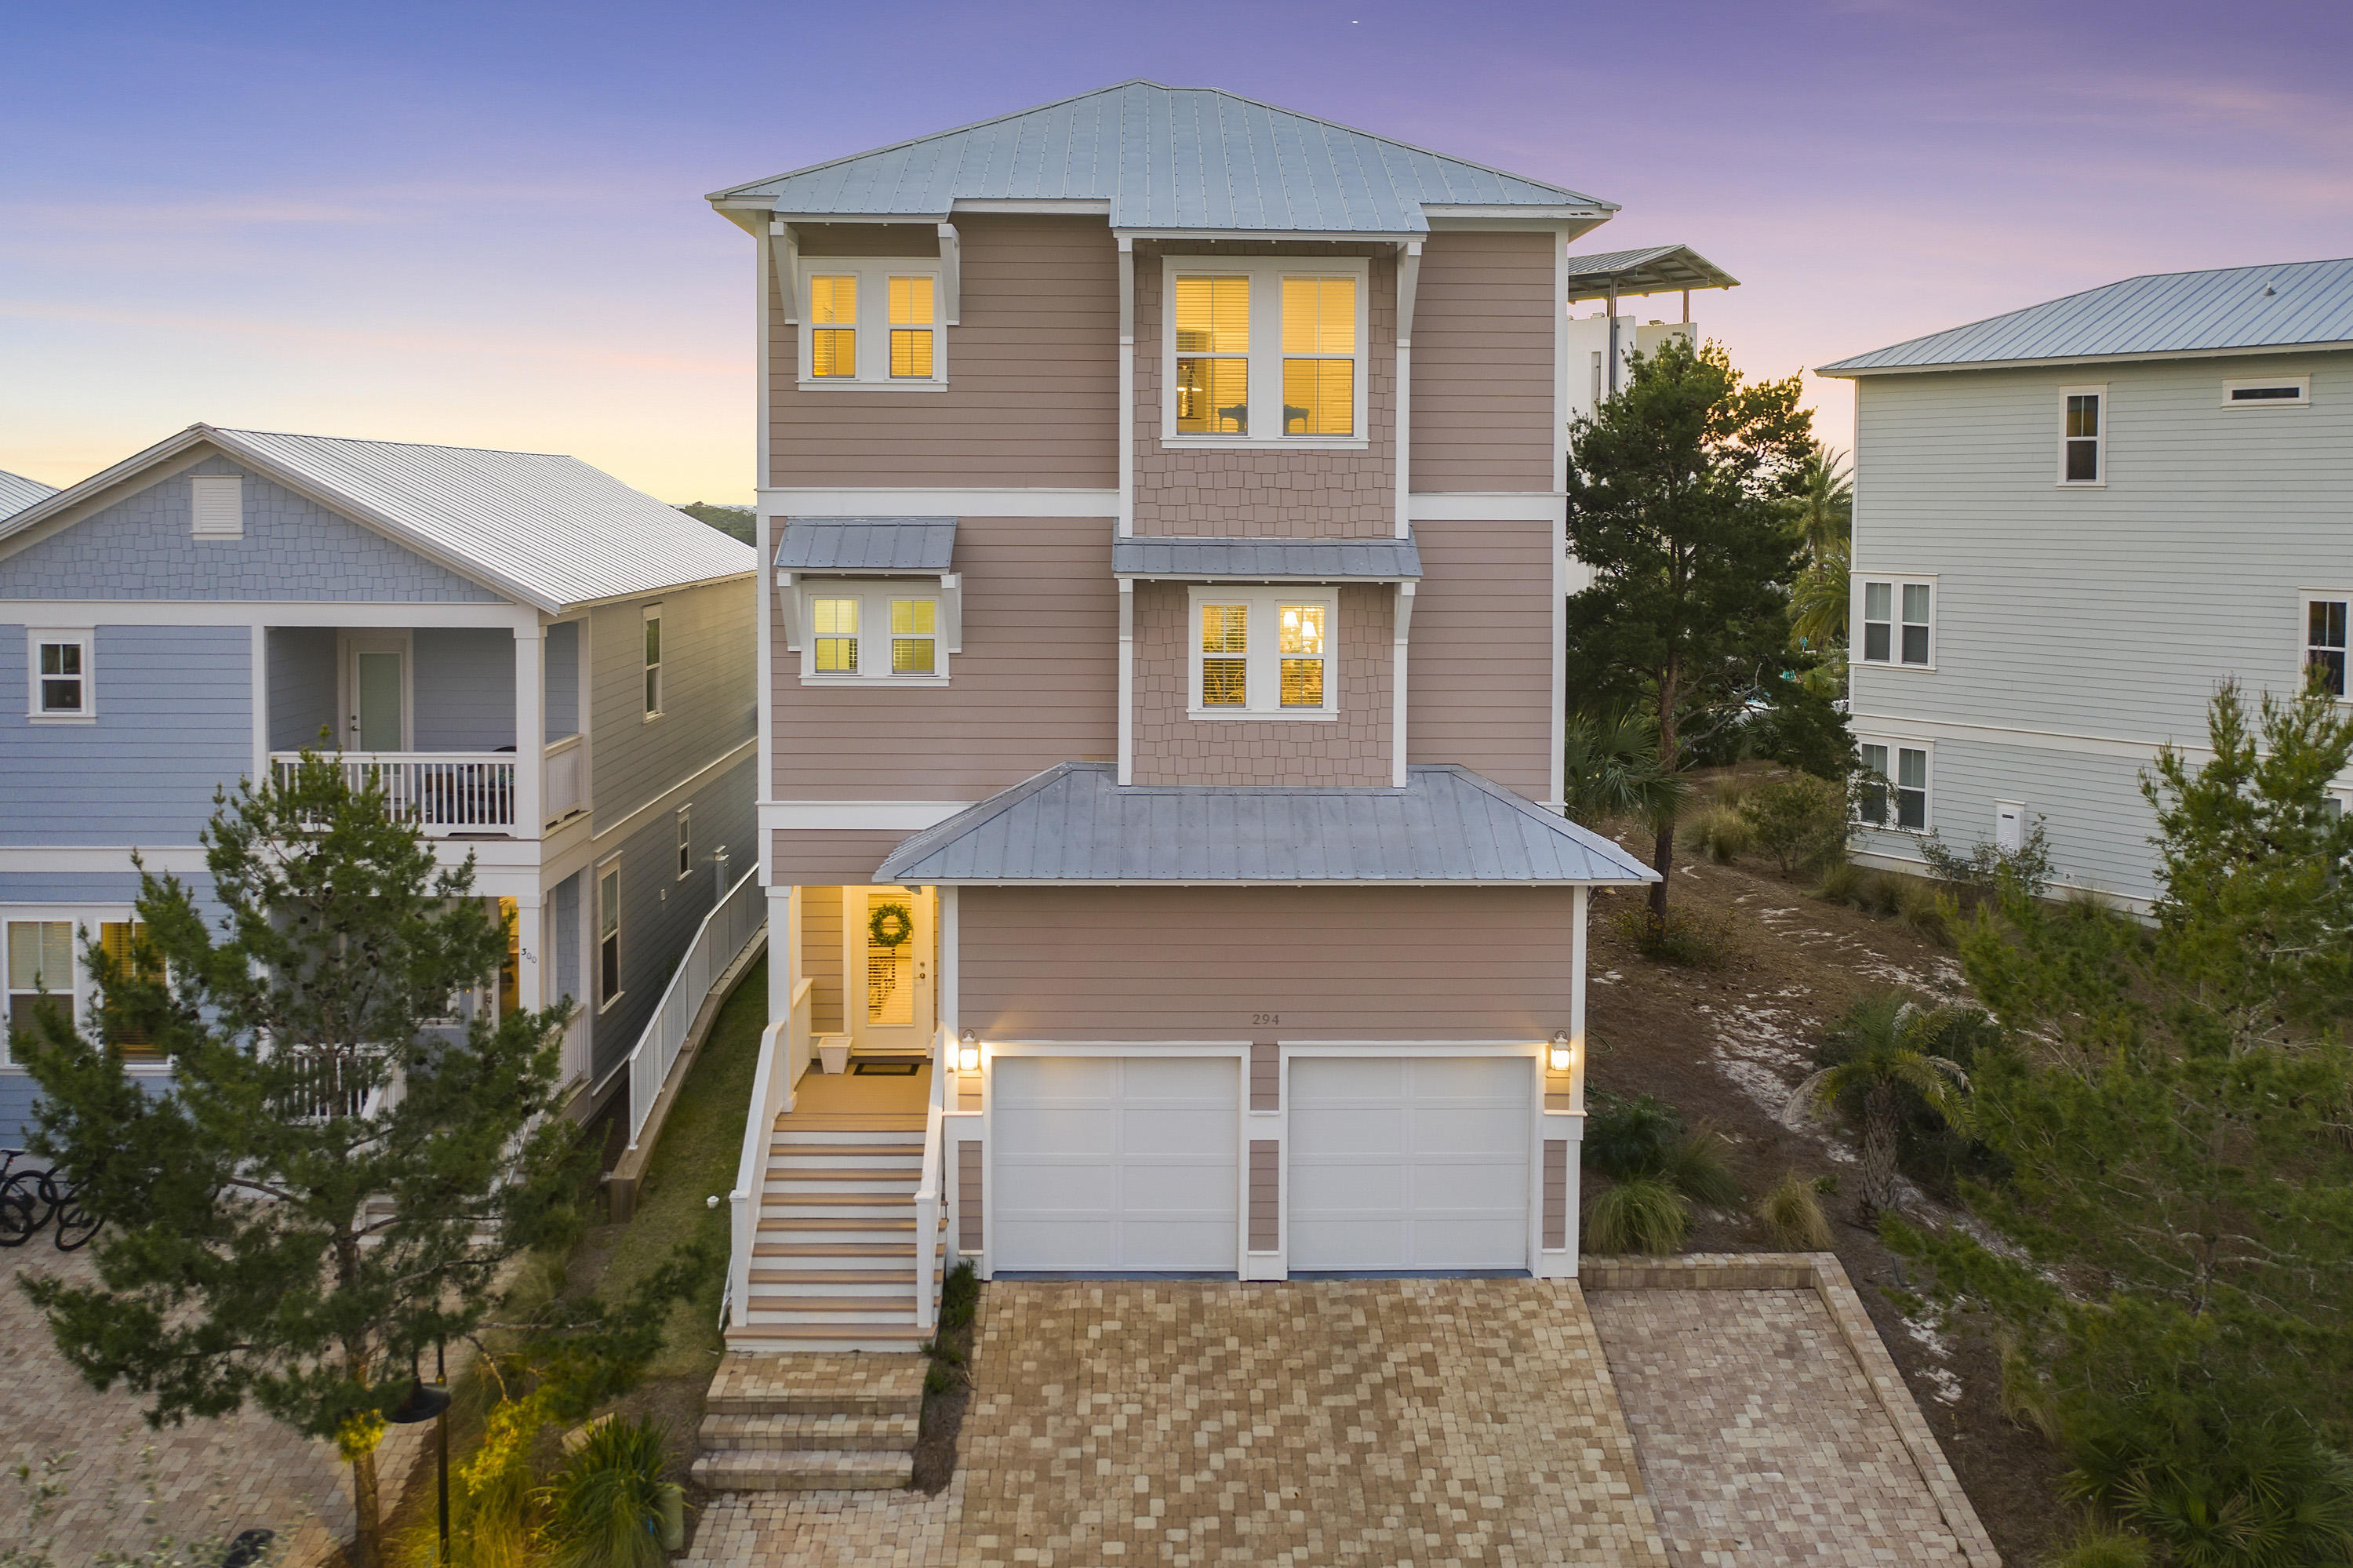 Photo of home for sale at 294 Gulfview, Santa Rosa Beach FL